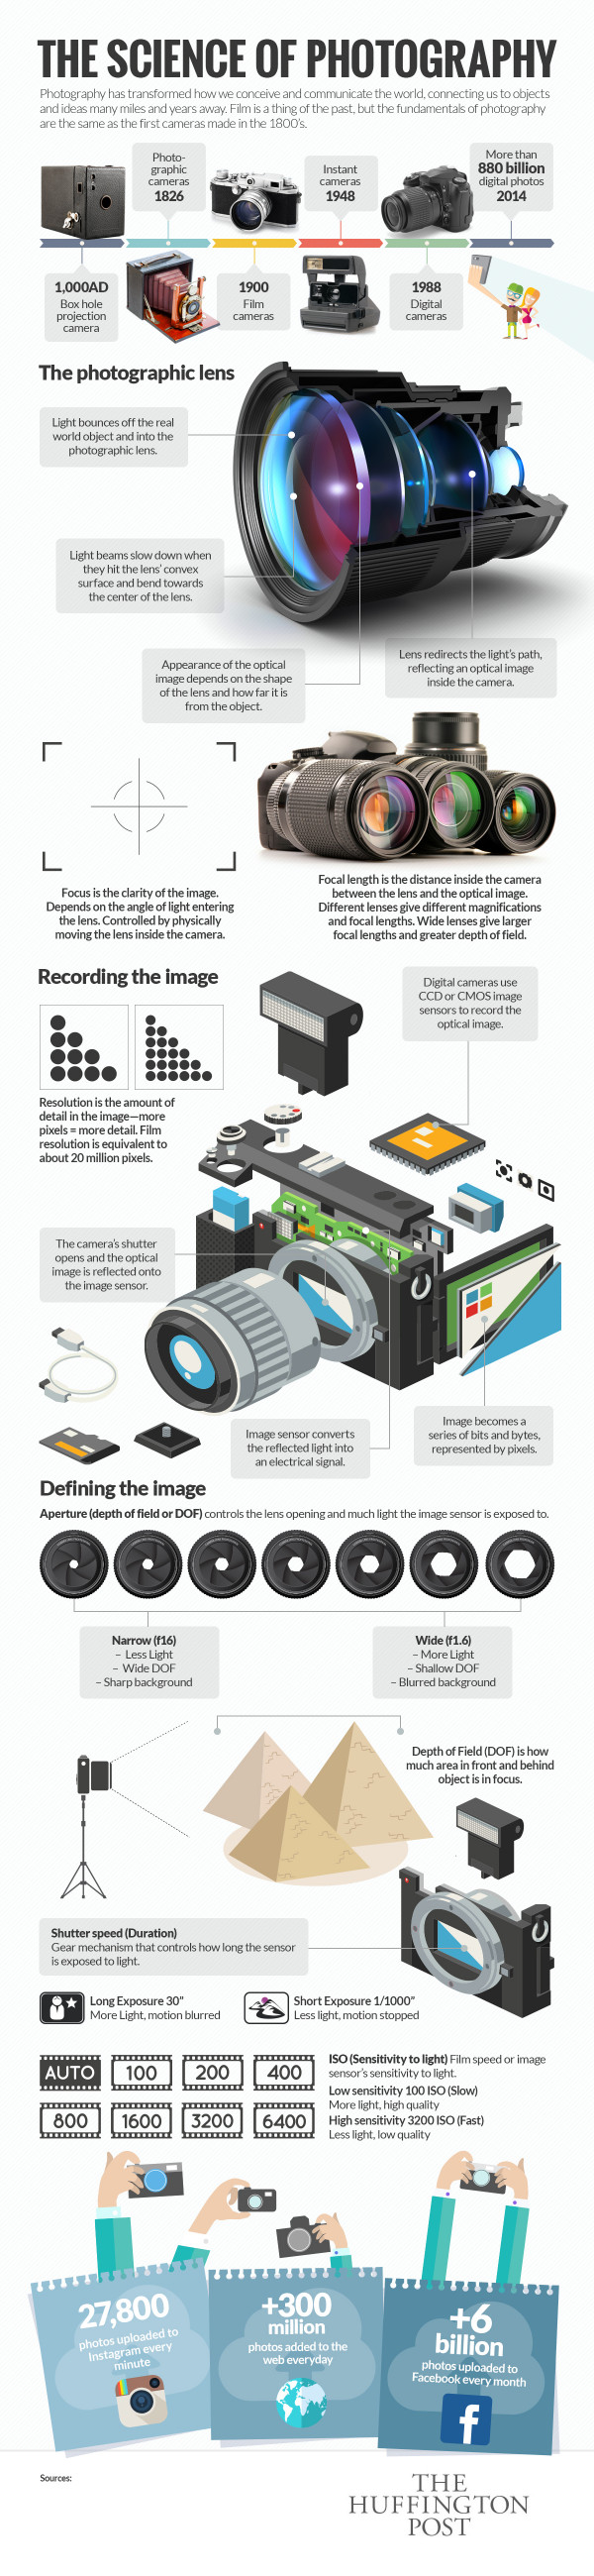 How Photography Actually Works